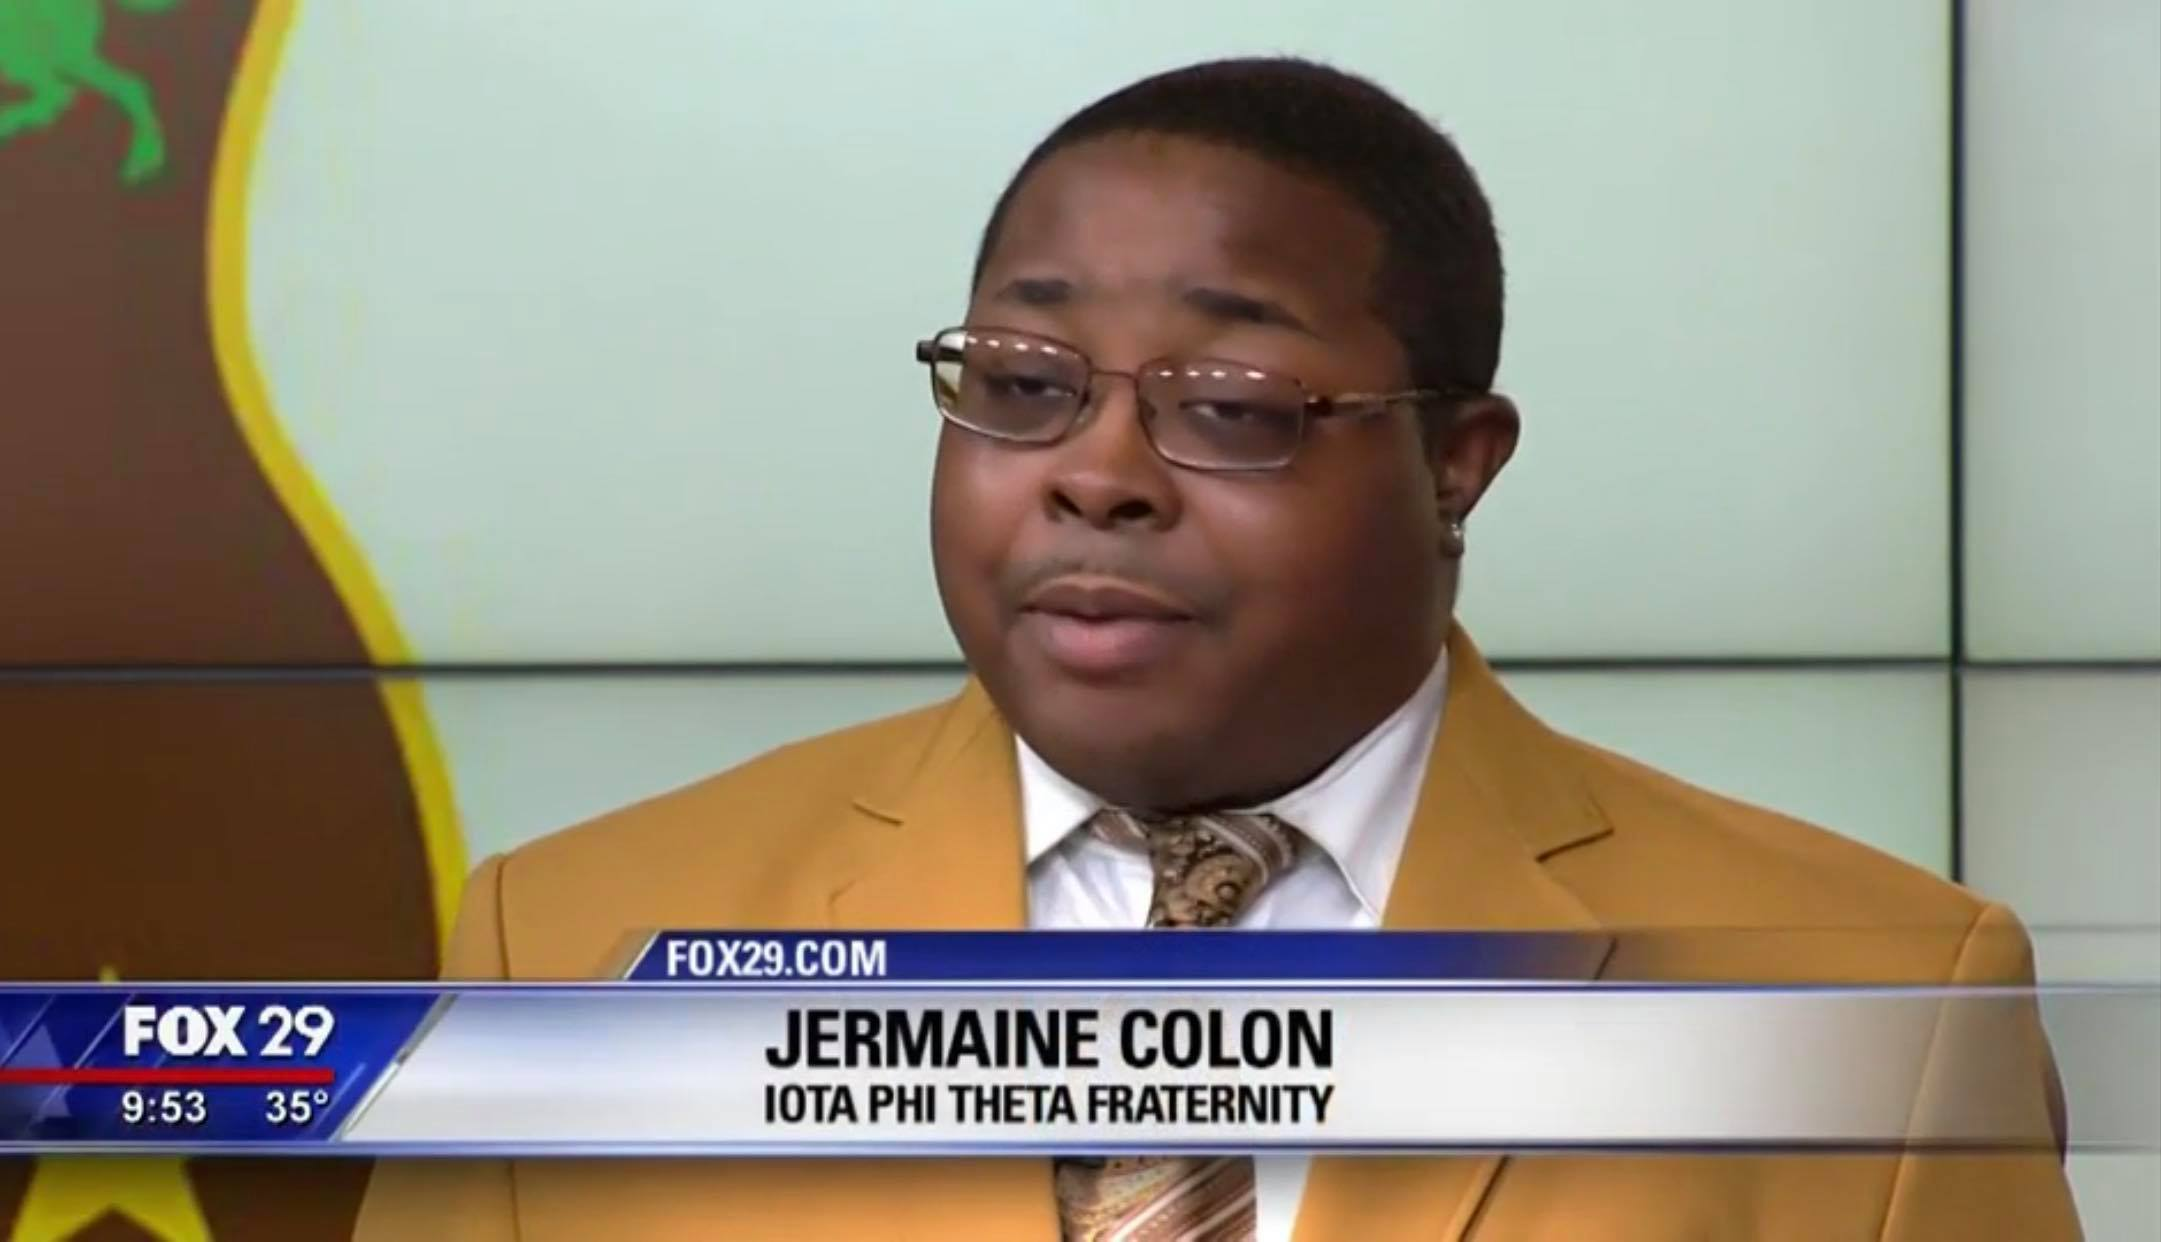 ACR Regional Secretary on Fox 29